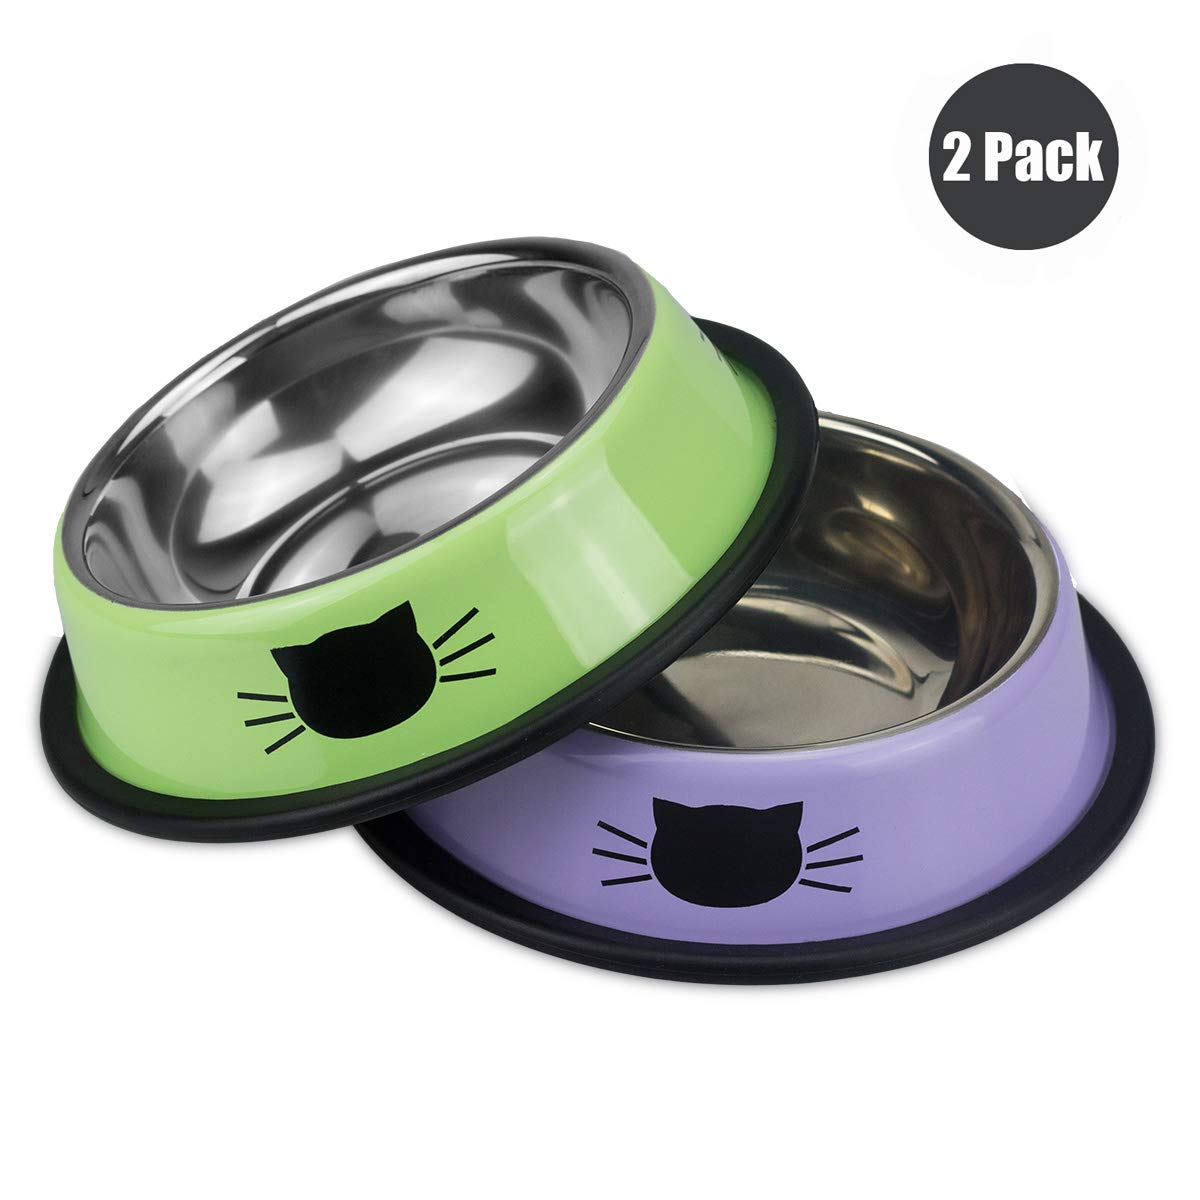 Ureverbasic Cat Bowls, Cat Feeding Bowls Anti-Slip Cat Dishes for Small Kitten Cats, Double Cat Bowl 2 Pack